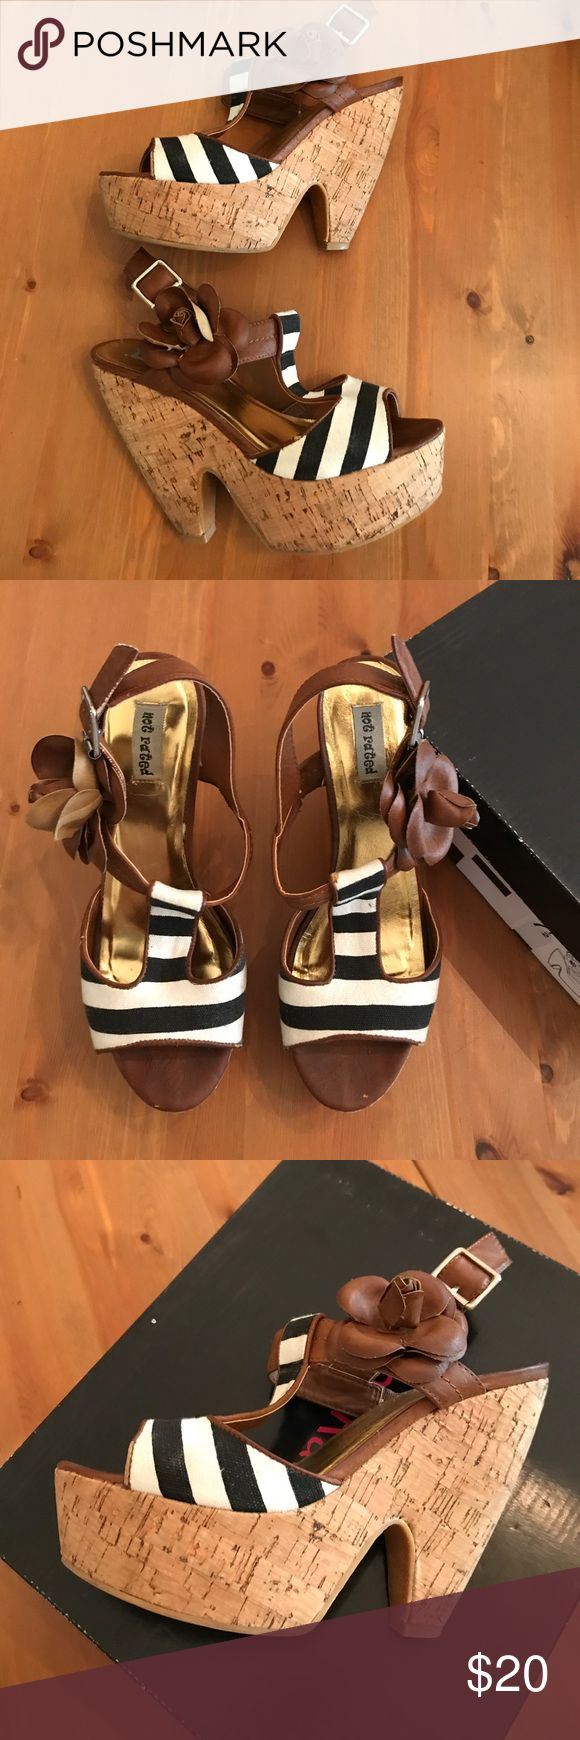 Stripe Platform Heels 7.5 Not Rated Treky heels in size 7.5. Love these shoes so much, but I just had a baby and they aren't going to get much wear anymore. I have worn them a few times so there is a little bit of wear to them. Check out out all the photos to see. Still in great condition though. Not Rated Shoes Heels